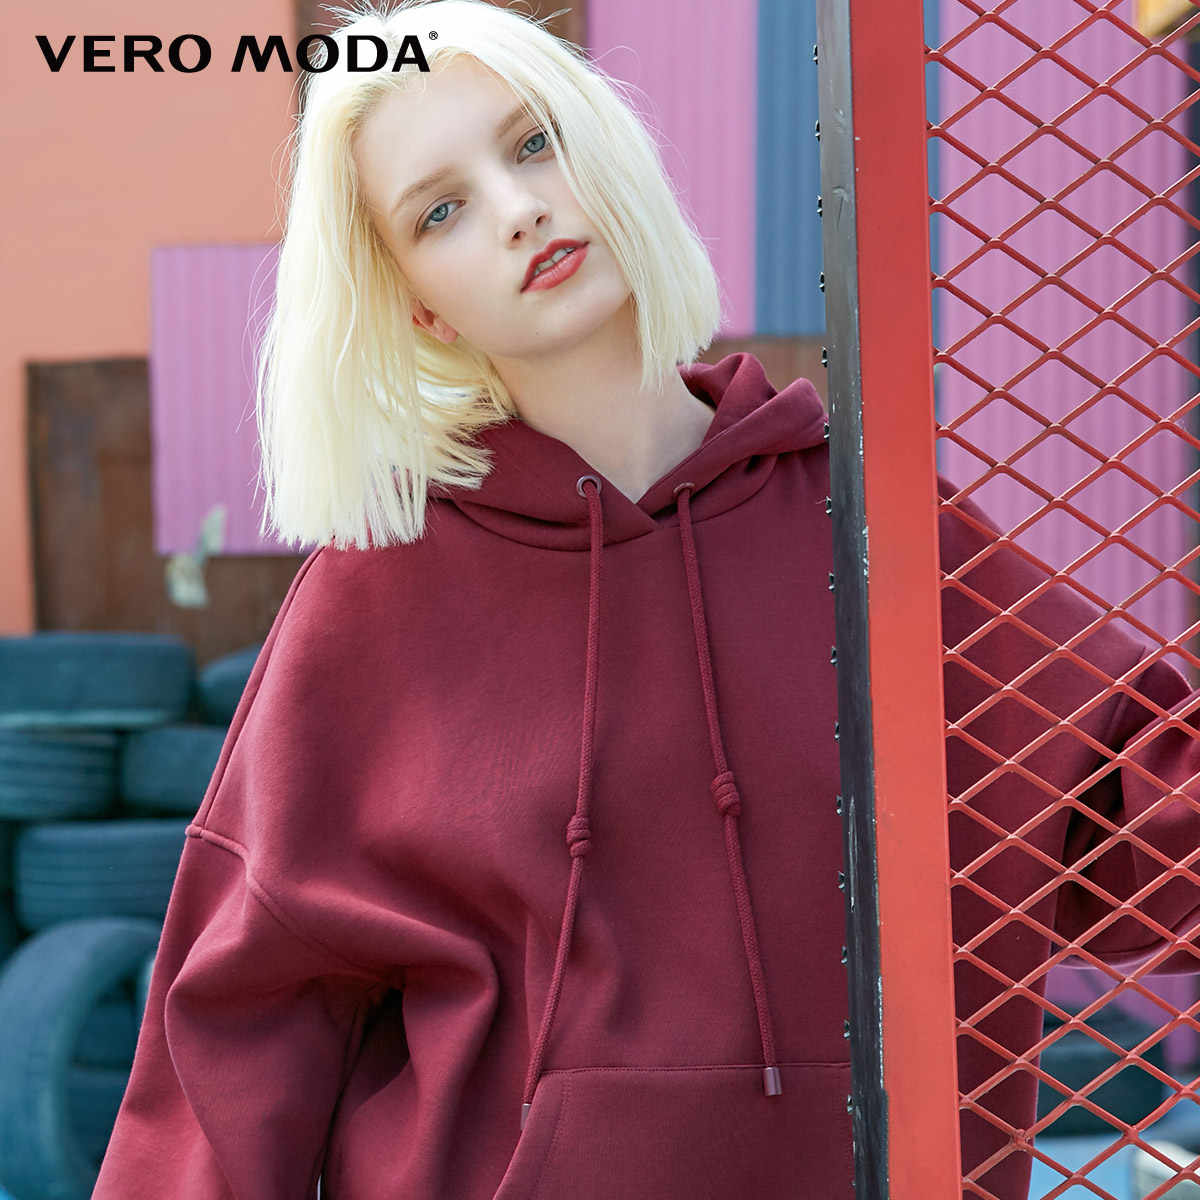 Vero Moda Women's 2019 hooded padded plush velvet leisure sweatshirt | 318333504